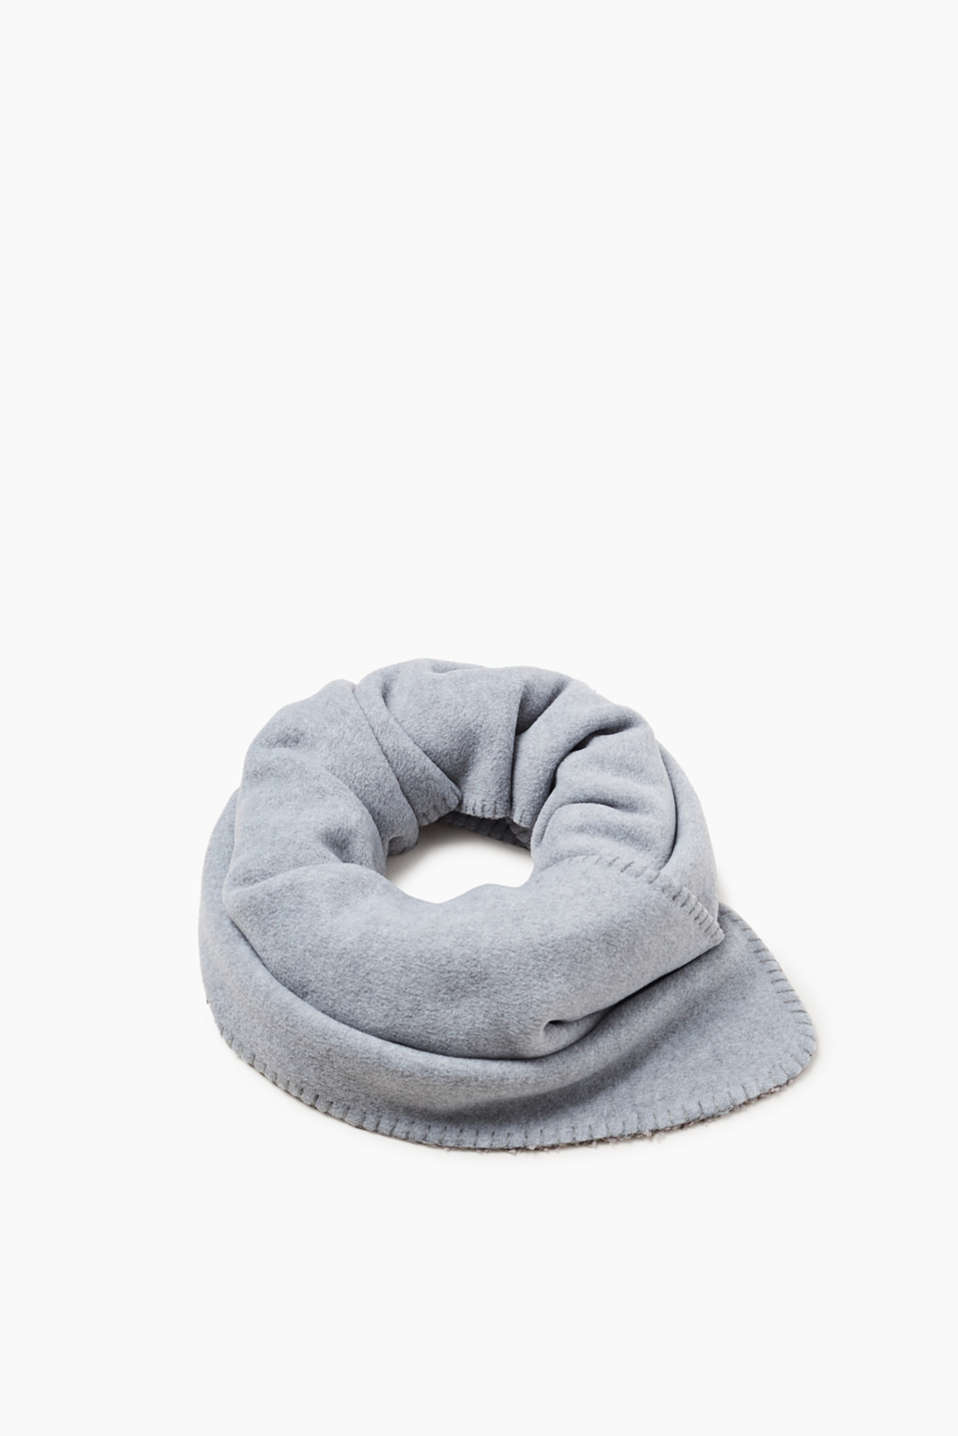 A snug piece for cold days: scarf in a warming teddy fleece